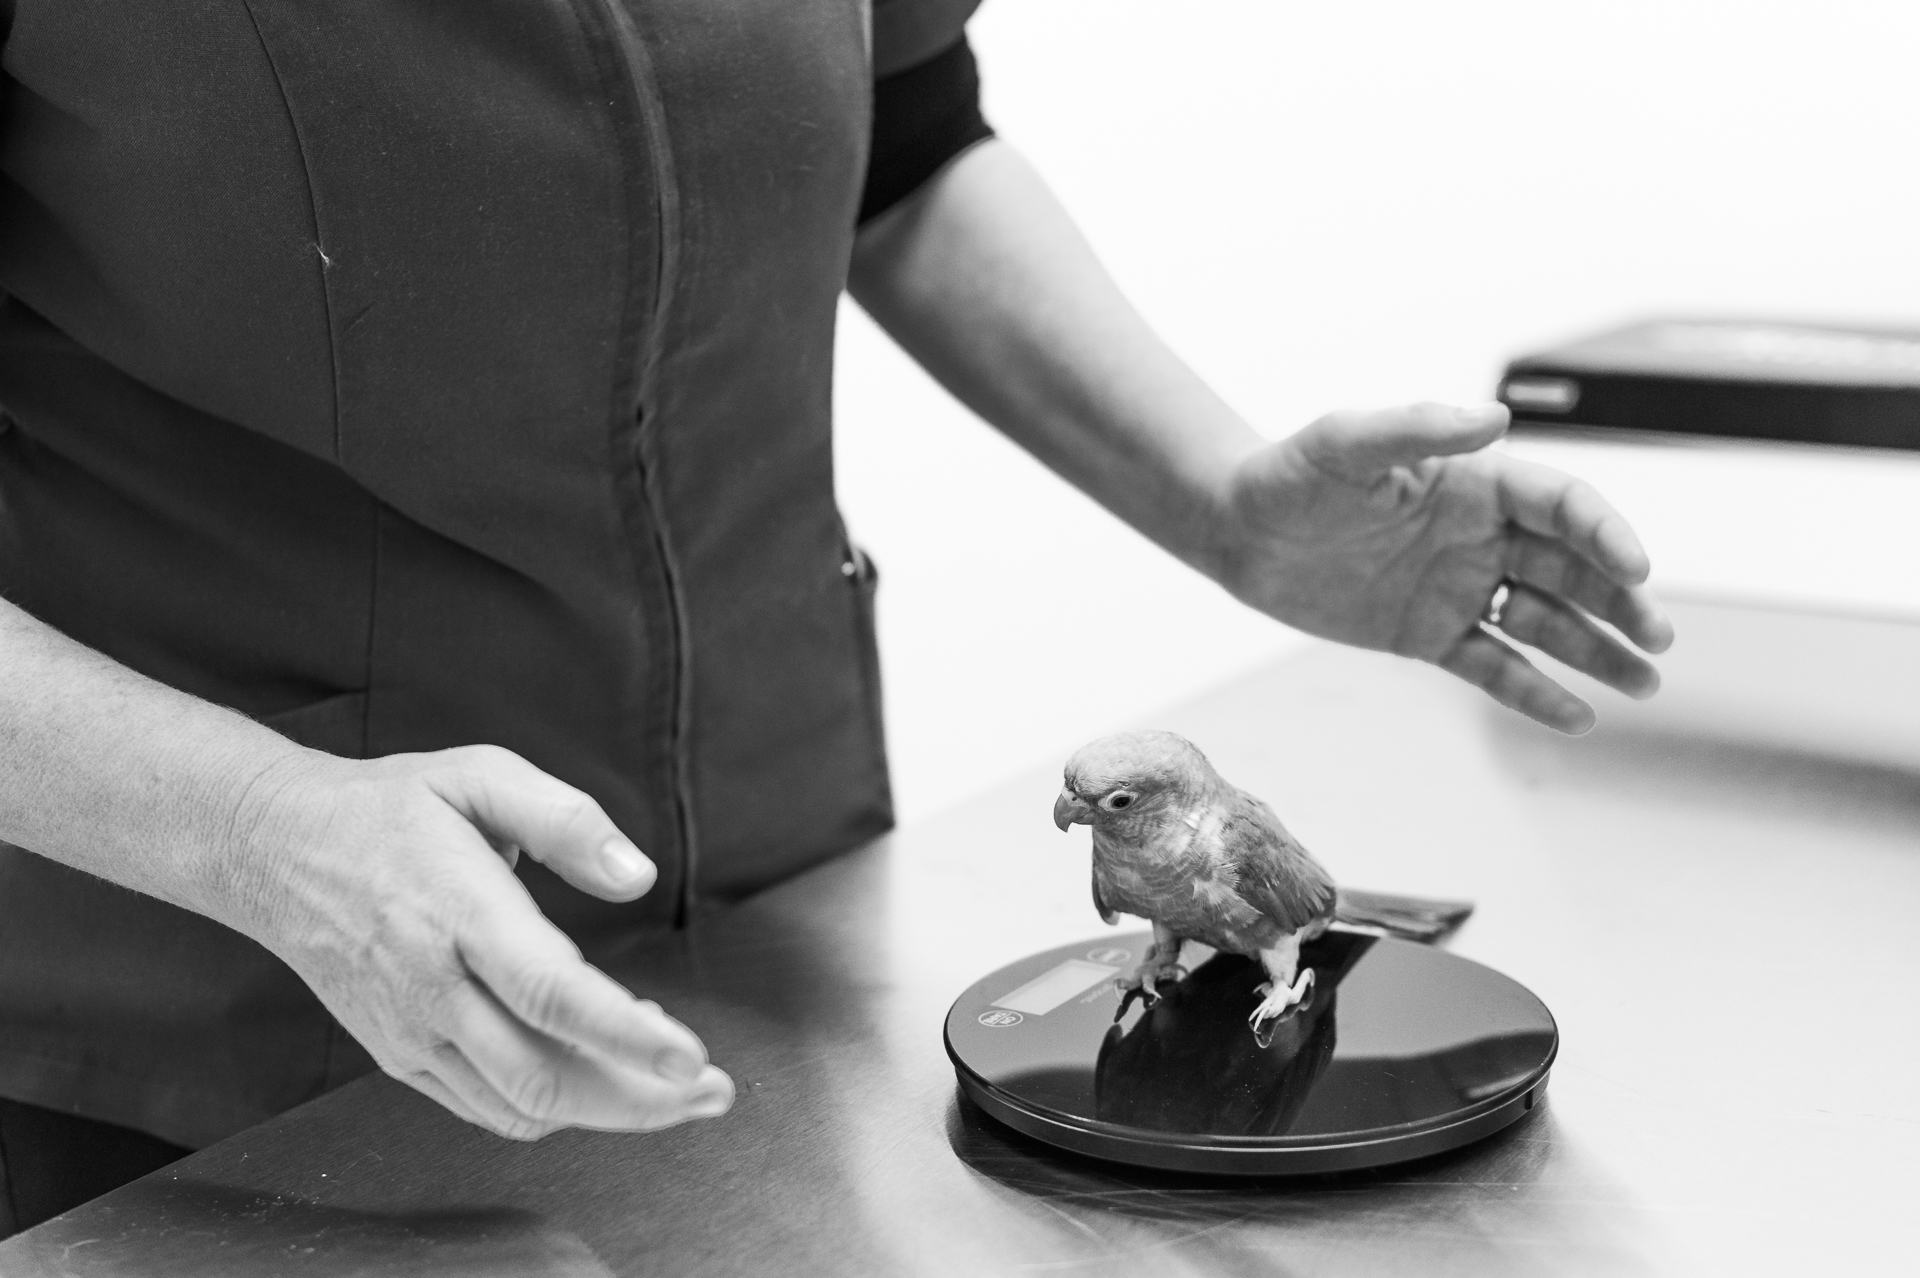 Weighing a Conure ... best done quickly!  23 February, 2018.